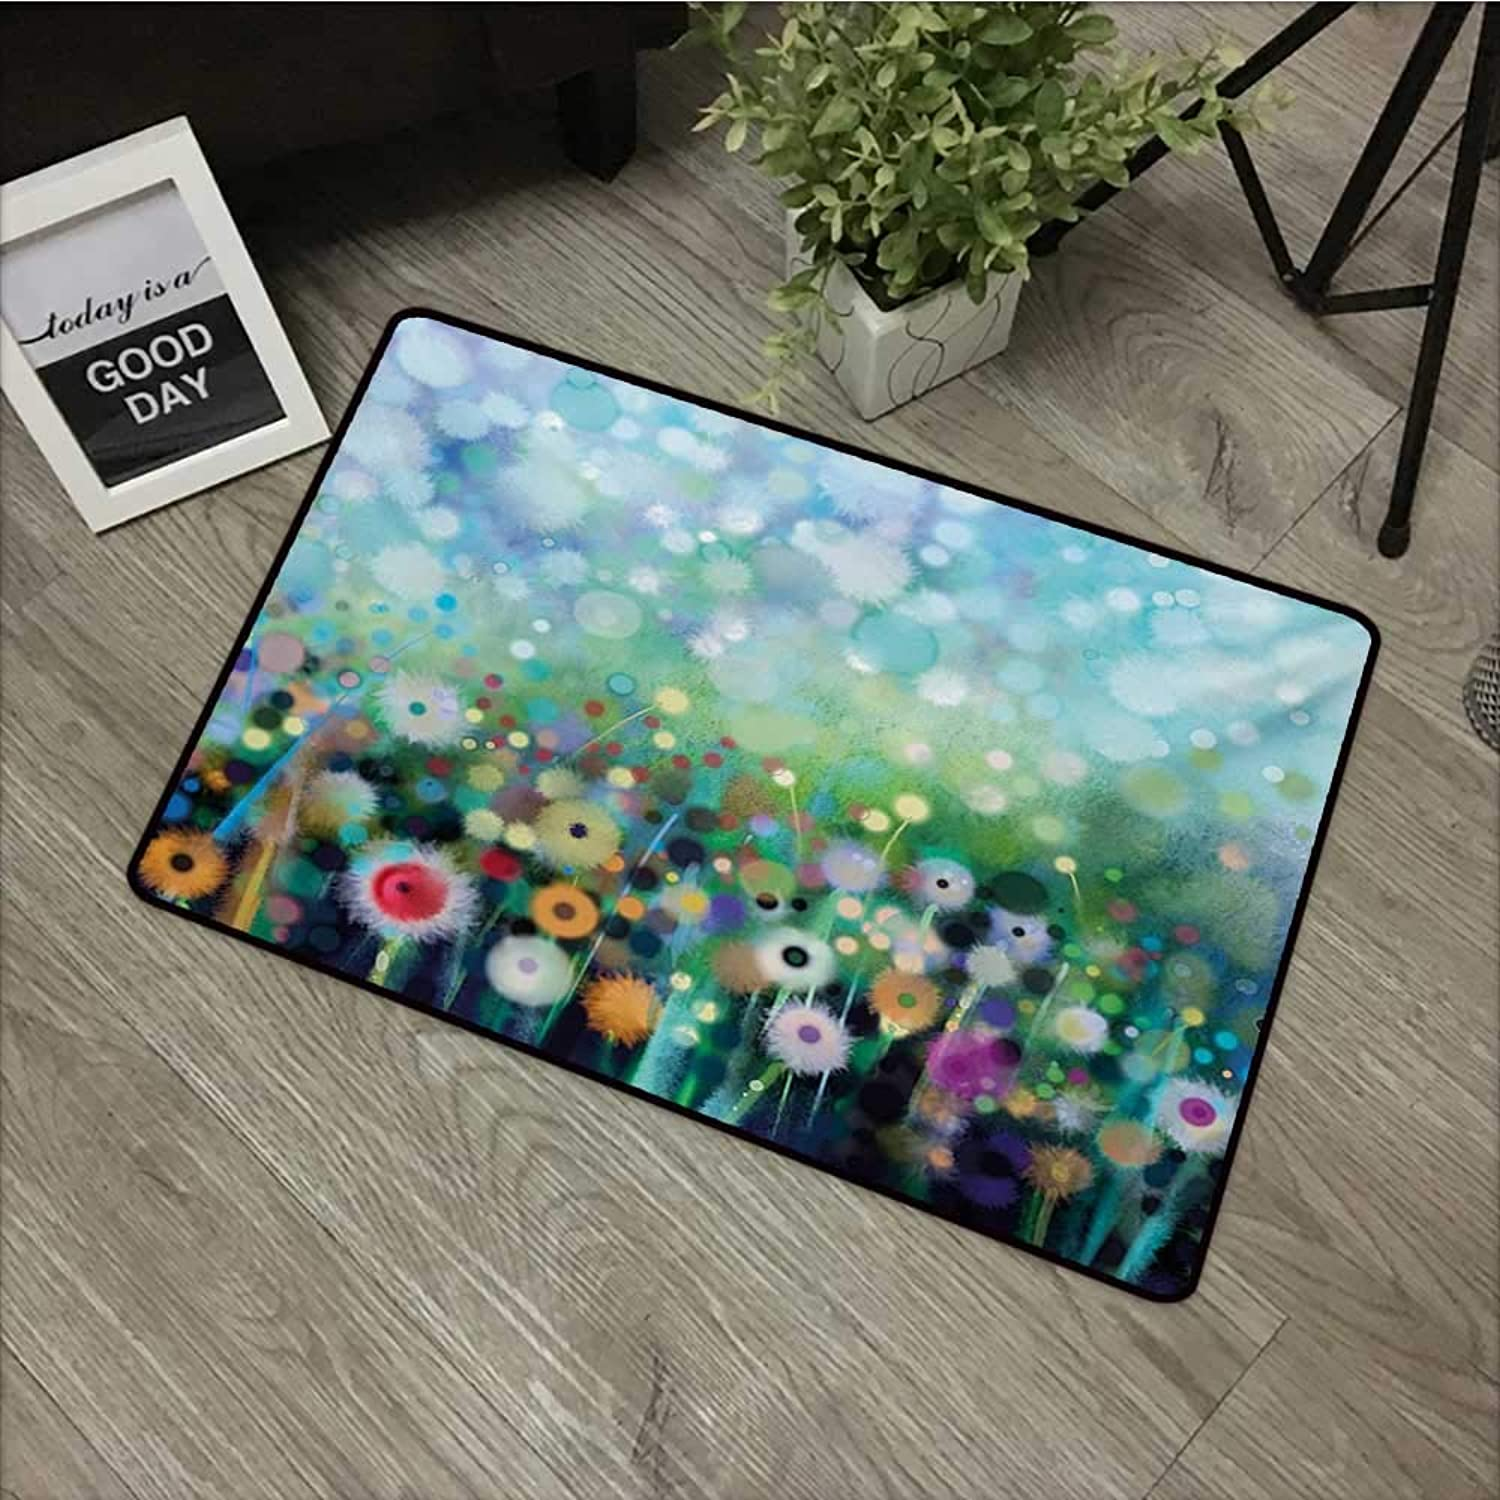 Interior Door mat W35 x L59 INCH Flower,Dandelion Seeds in Air Splashes Pollination Time Mother Earth Growing Giving Life,Multicolor Easy to Clean, no Deformation, no Fading Non-Slip Door Mat Carpet